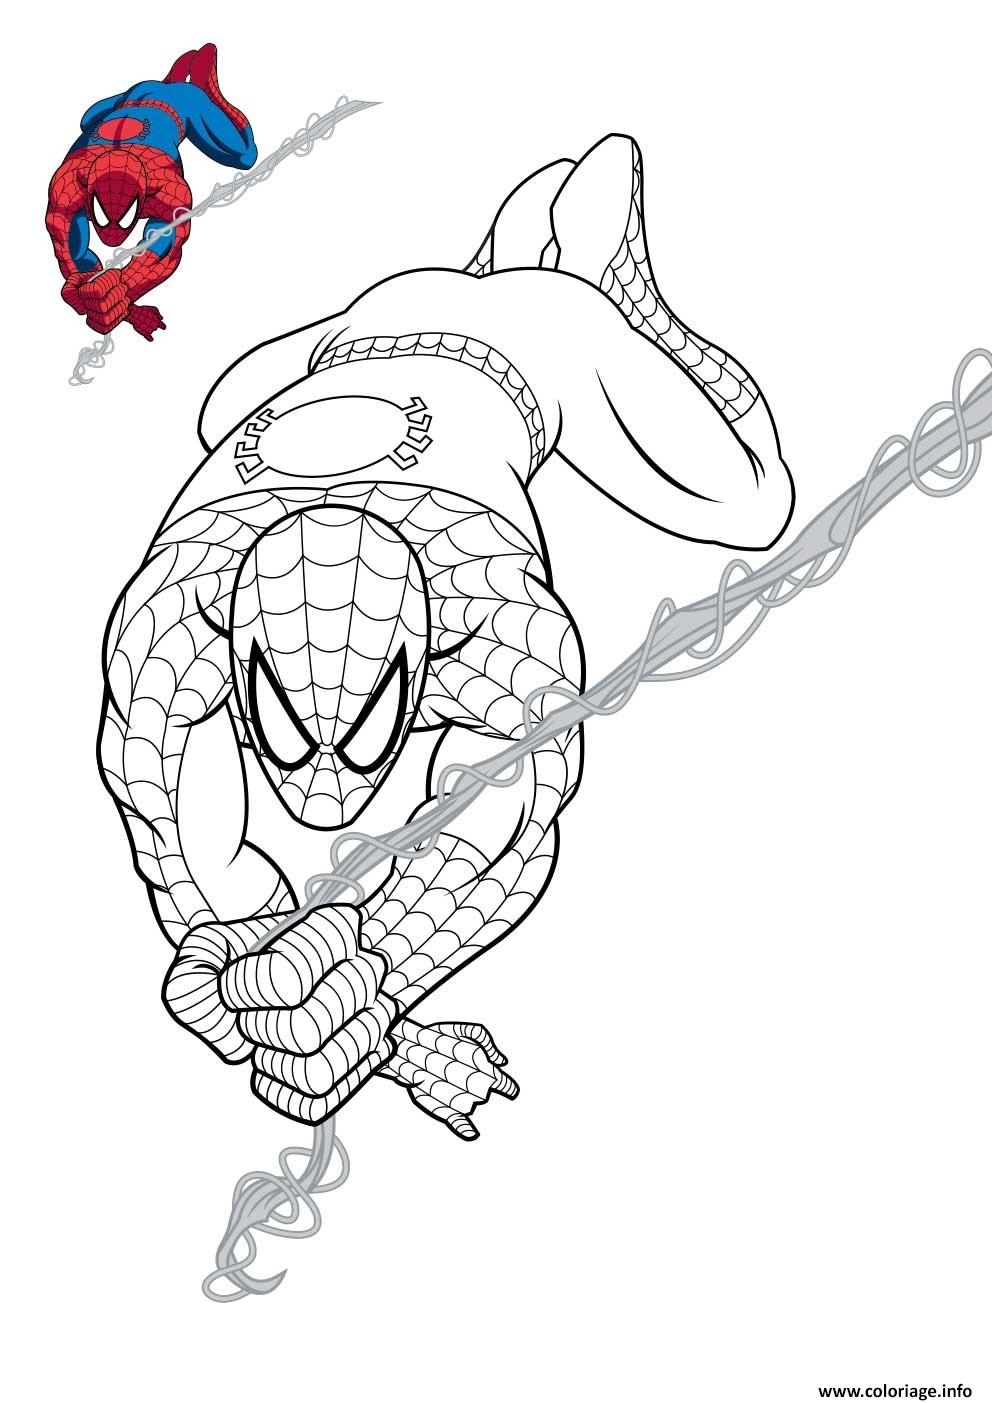 Coloriage spiderman en plein action dessin - Dessin spiderman facile ...